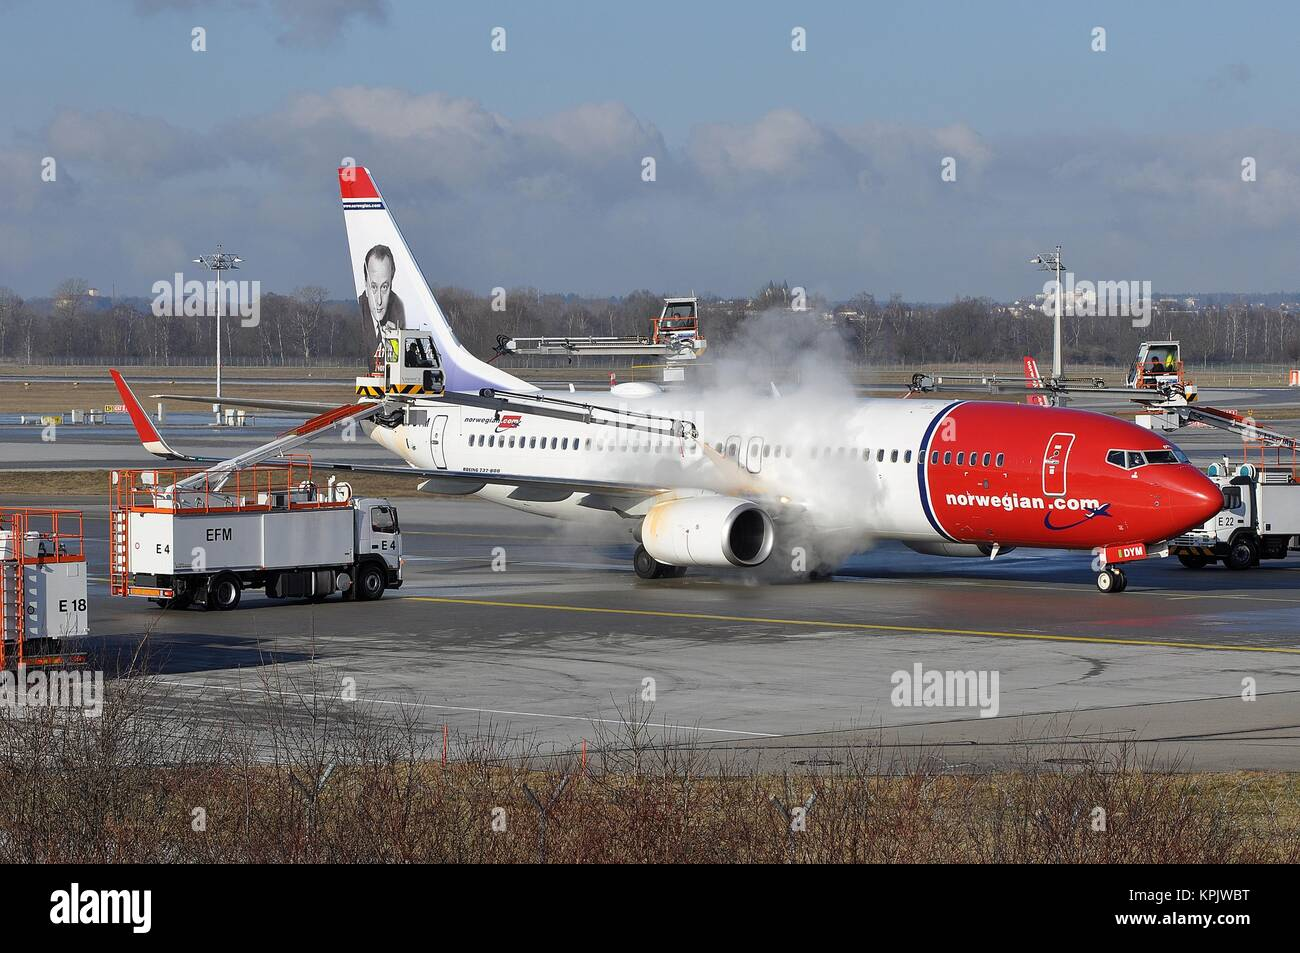 Enteisung der Norwegian Air Shuttle Boeing 737-800 (W) LN-DYM IN MÜNCHEN. Stockbild